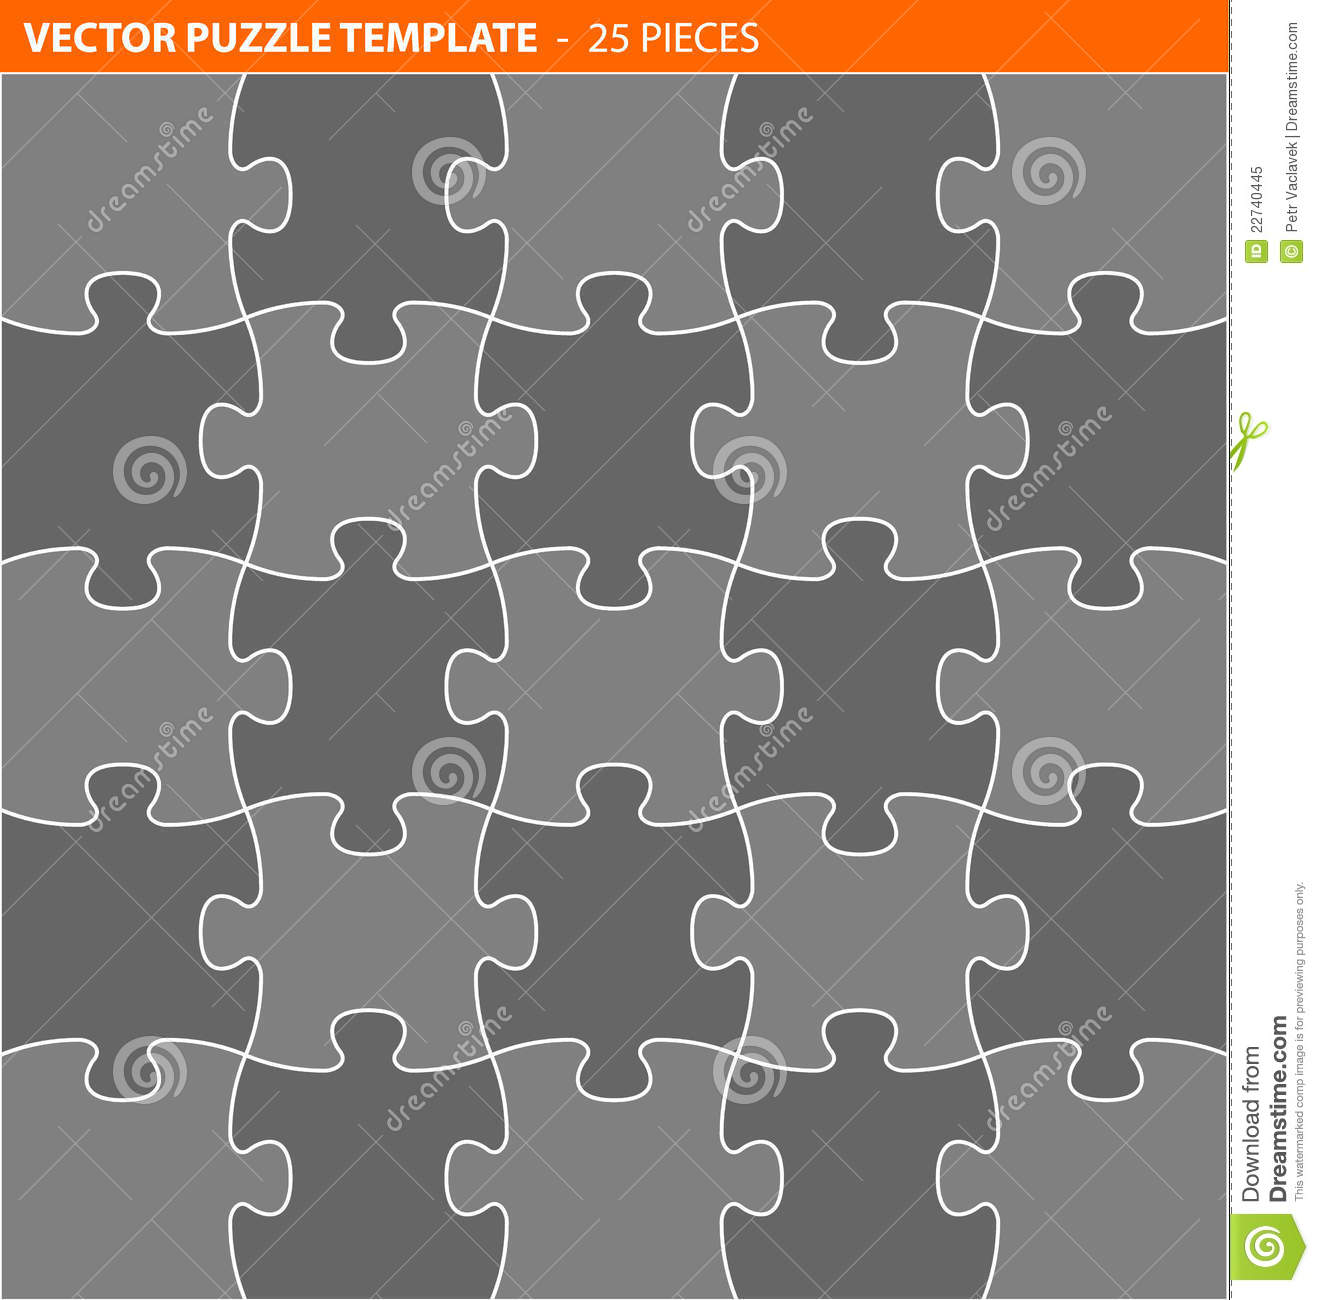 Complete Vector Puzzle / Jigsaw Template Stock Vector - Illustration ...